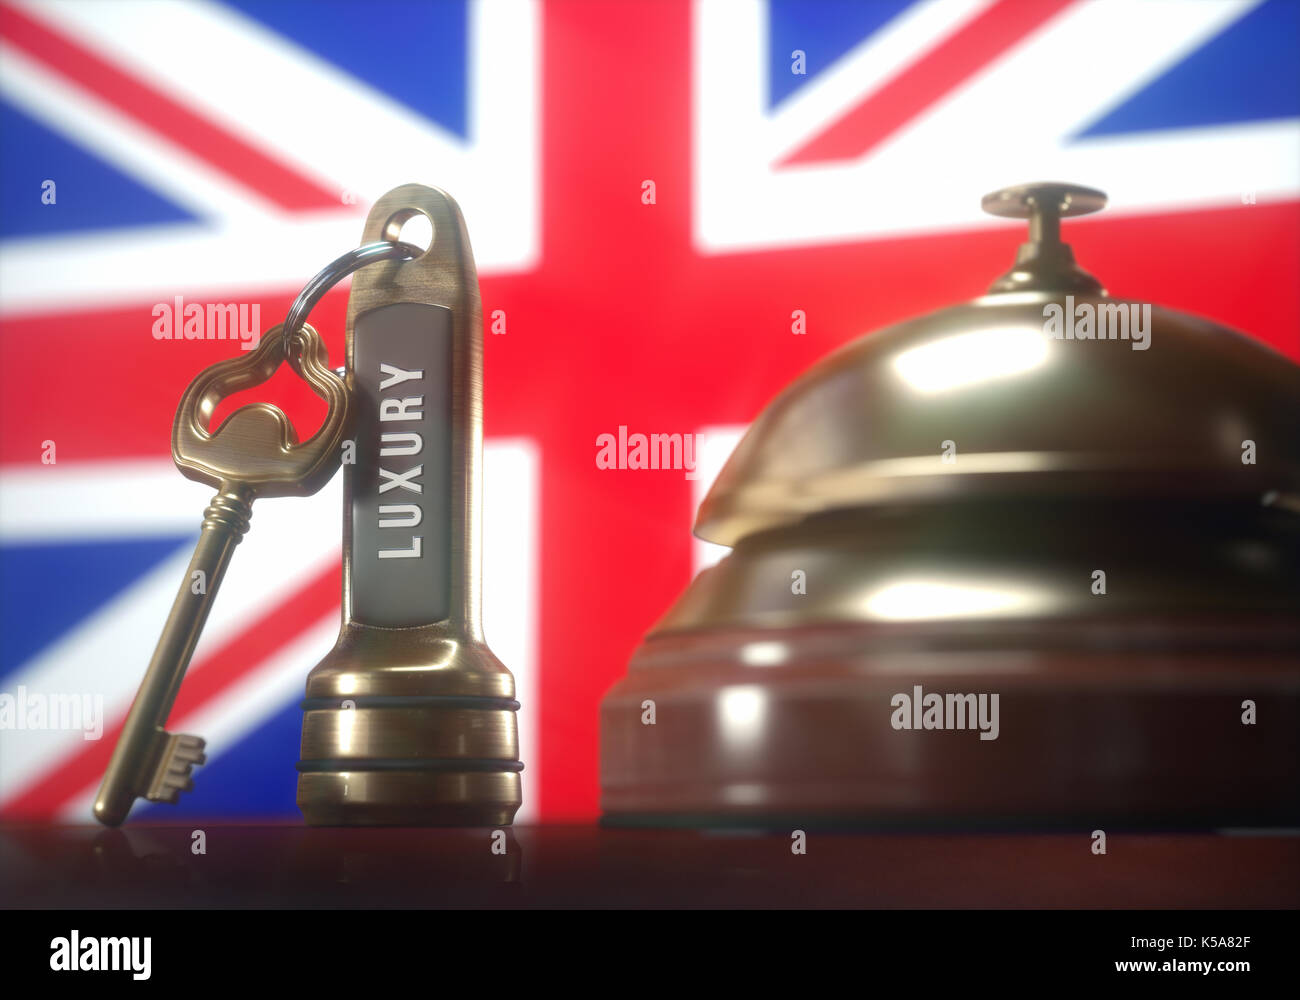 Hotel key and bell with British flag, illustration. - Stock Image